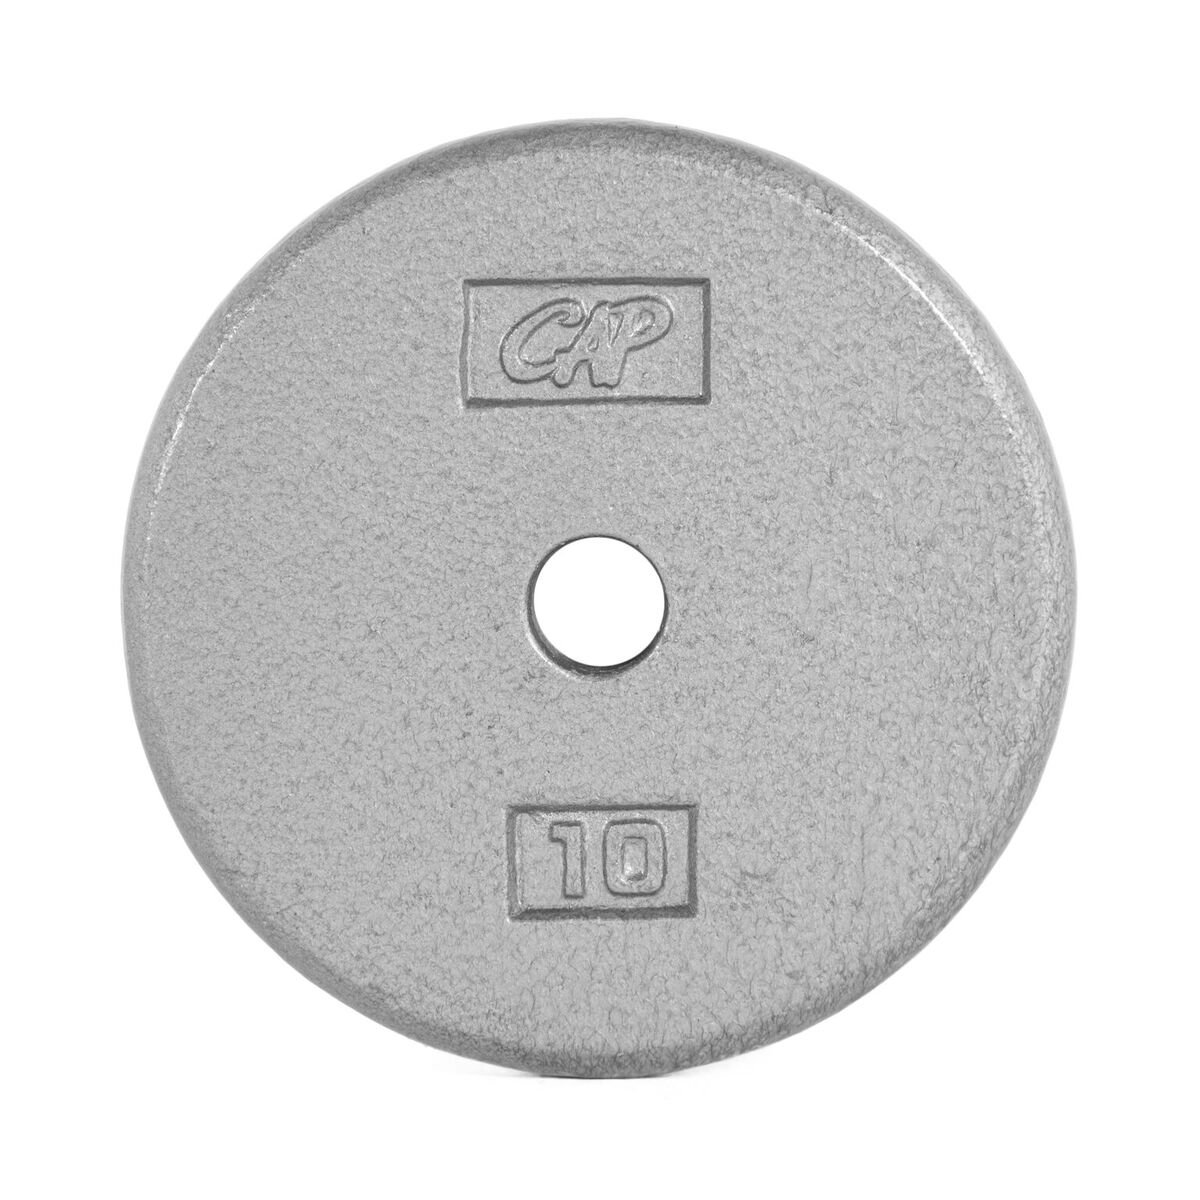 CAP Barbell Cast Iron Standard 1-Inch Weight Plates, Gray, Single, 10 Pound